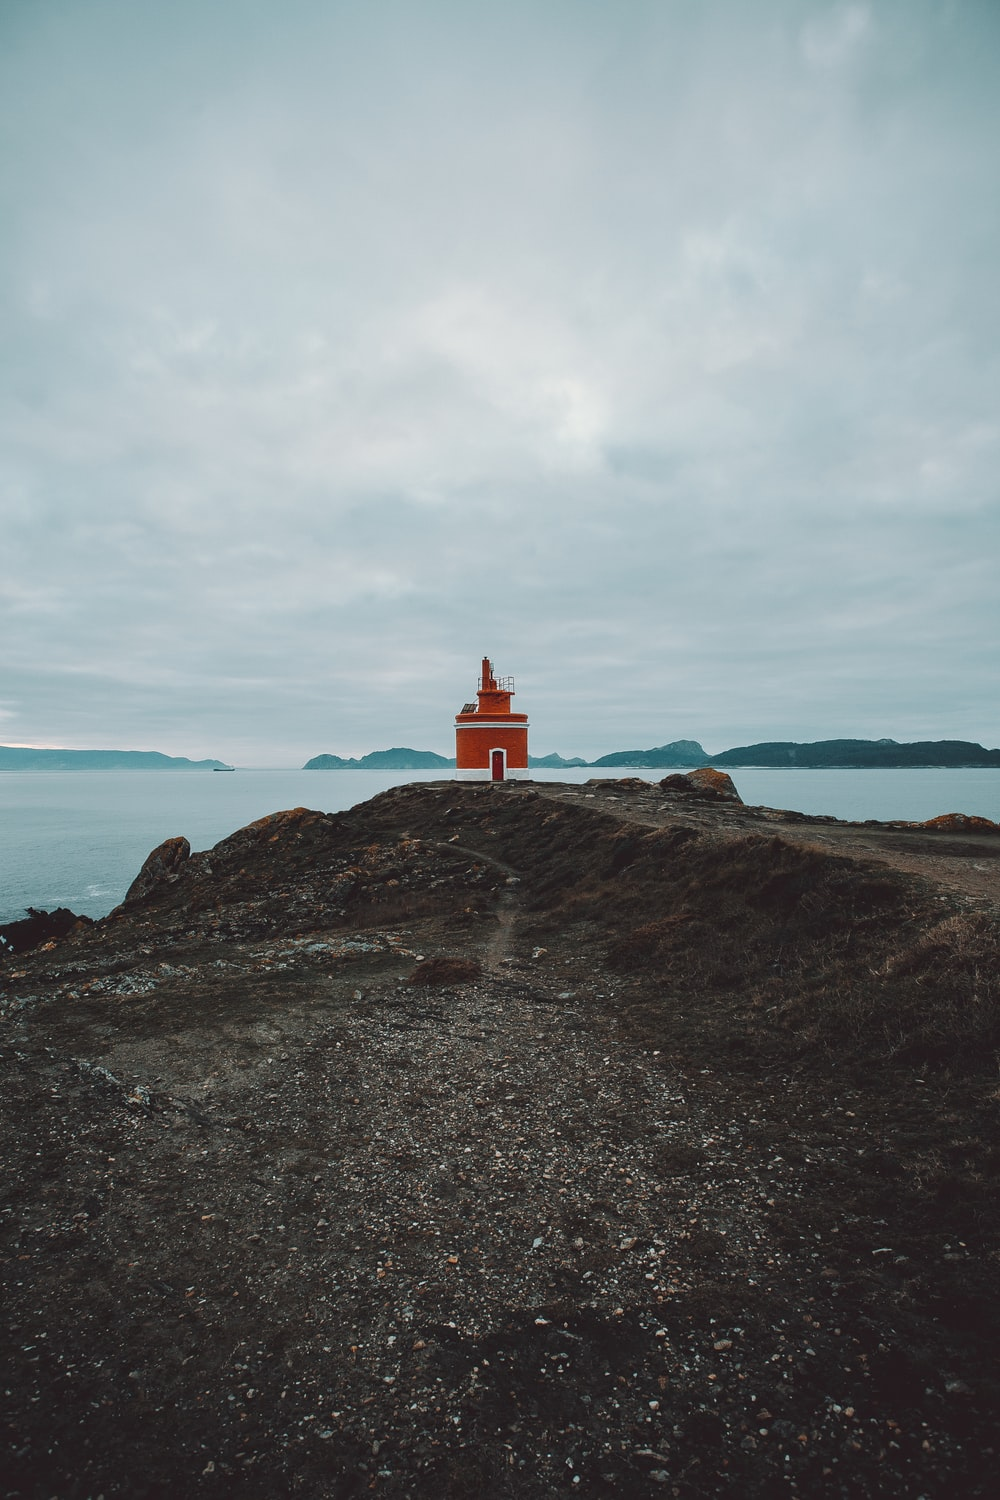 red lighthouse on island during day